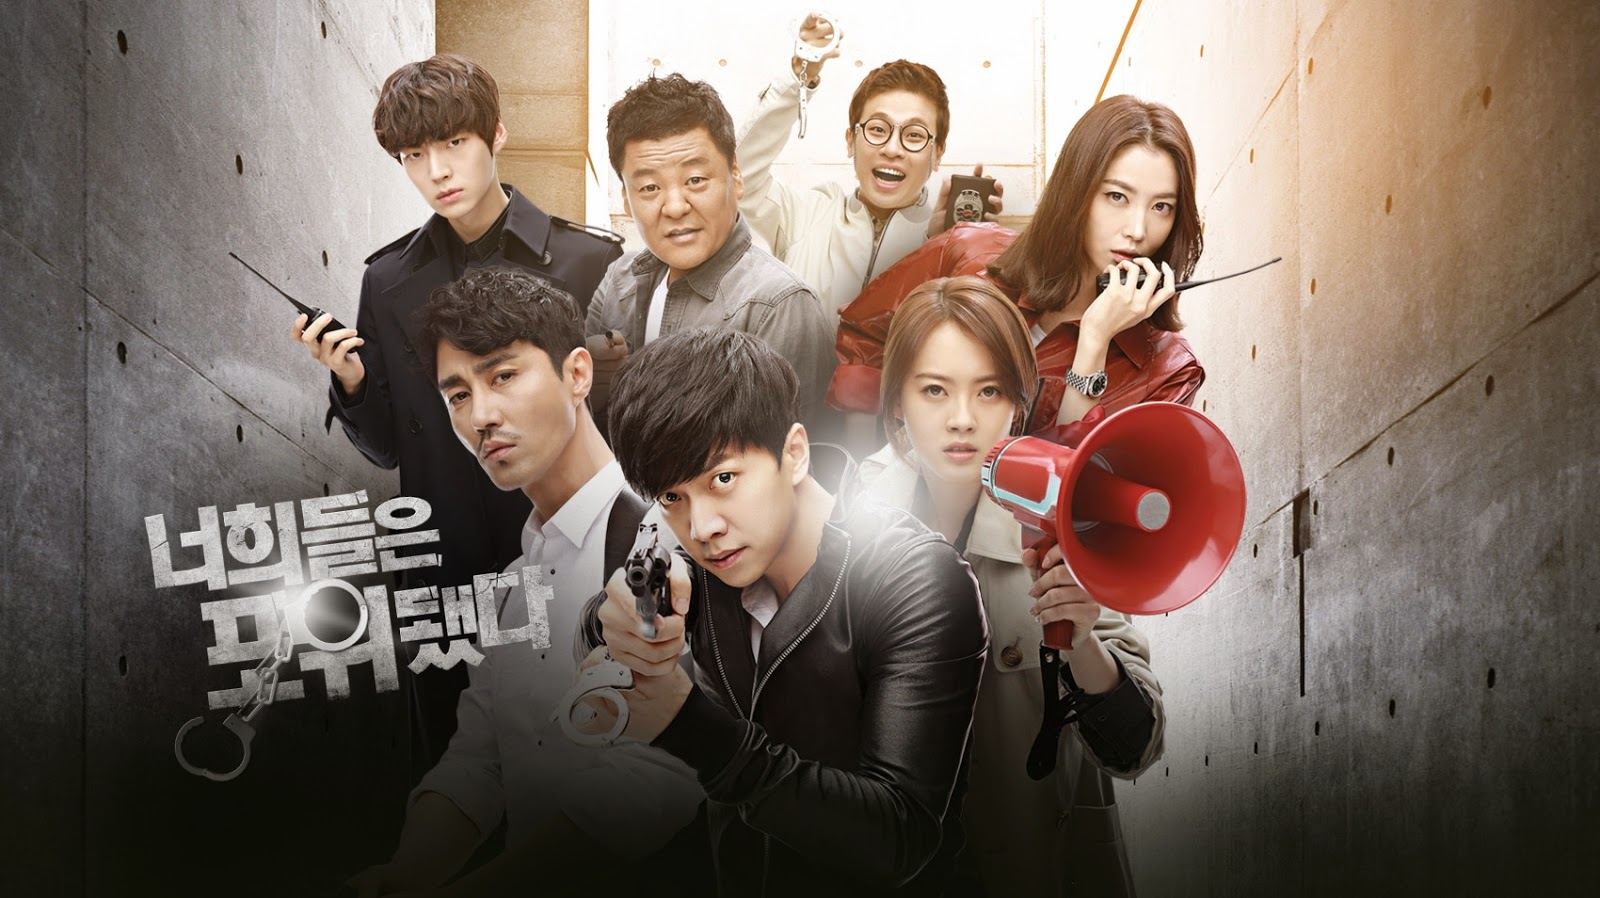 You're All Surrounded Lee Seung Ki kdrama, korean drama withdrawals Go Ah Ra, Cha Seung Won, korean drama to watch in 2014